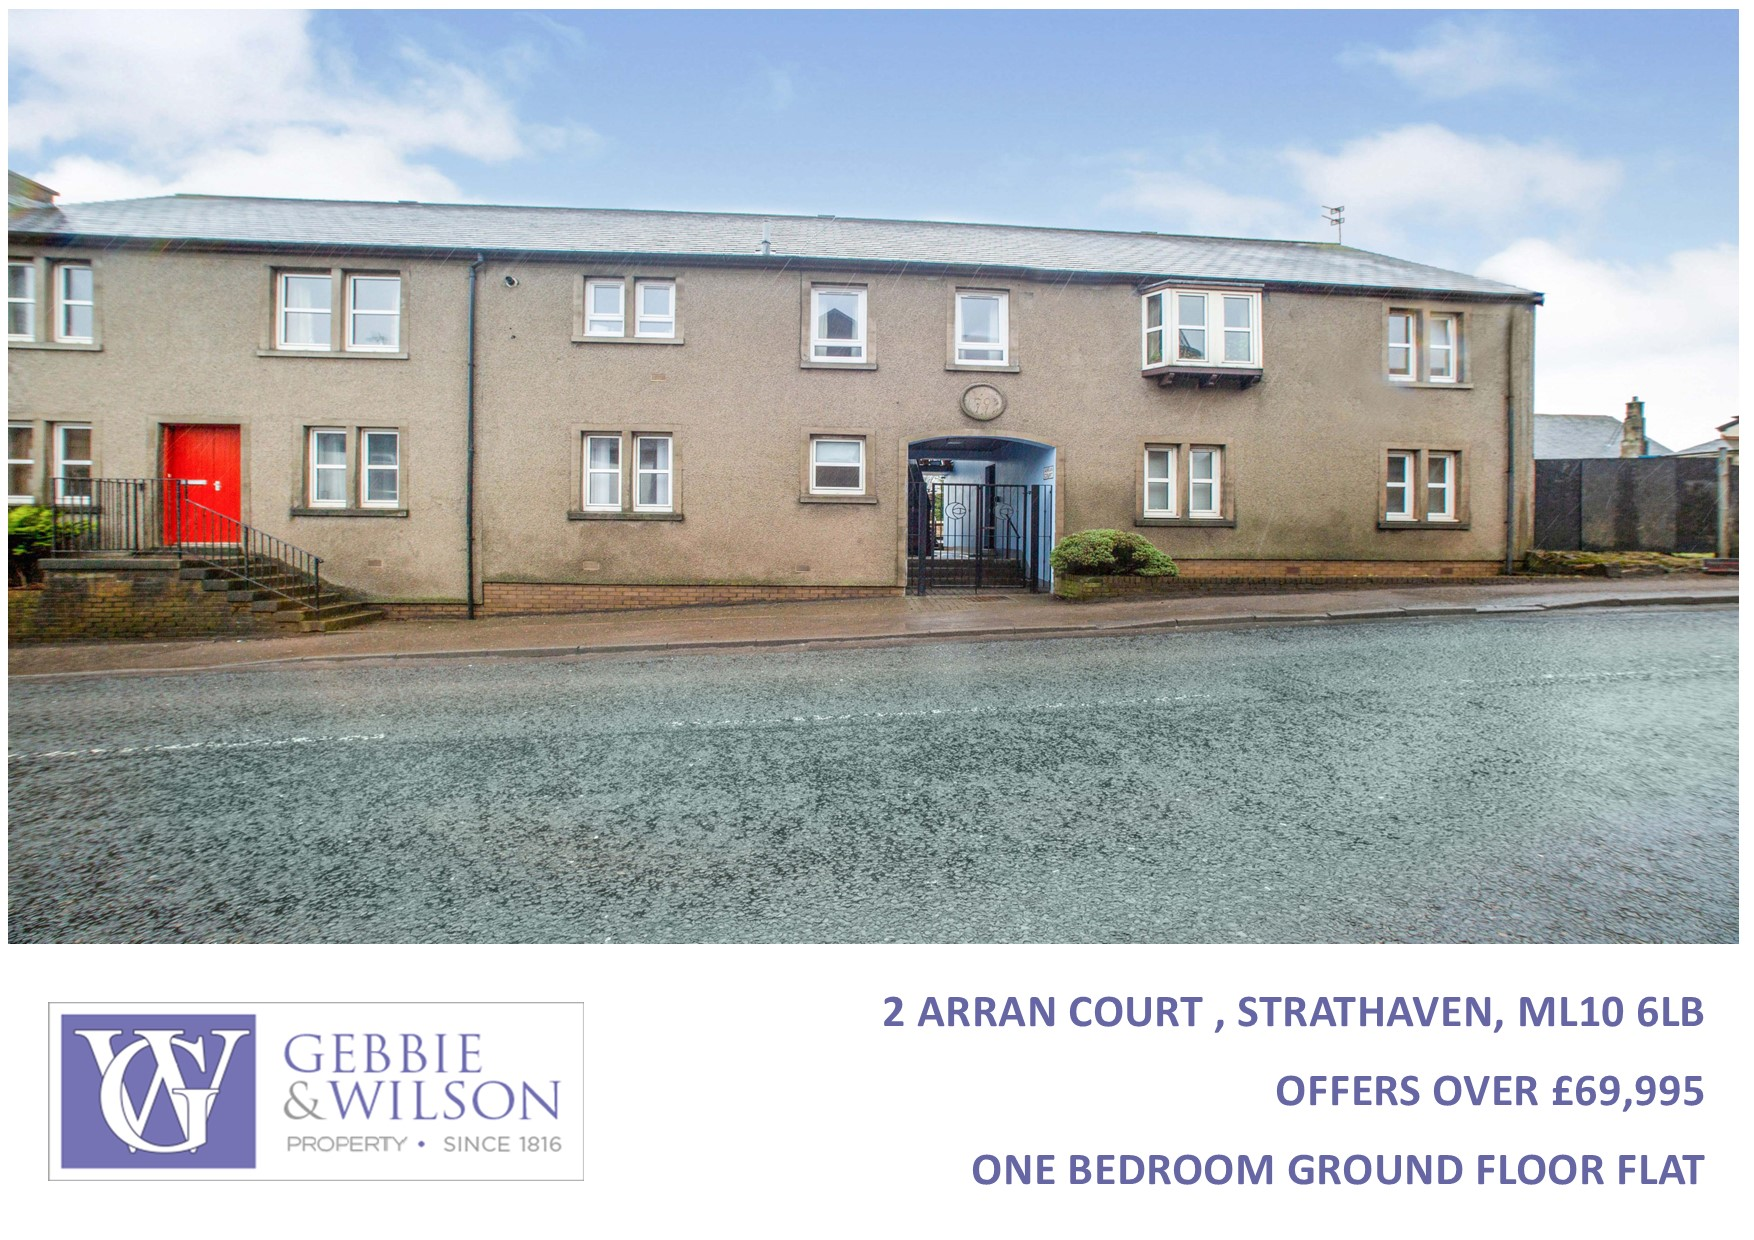 2 Arran Court Strathaven - For Sale